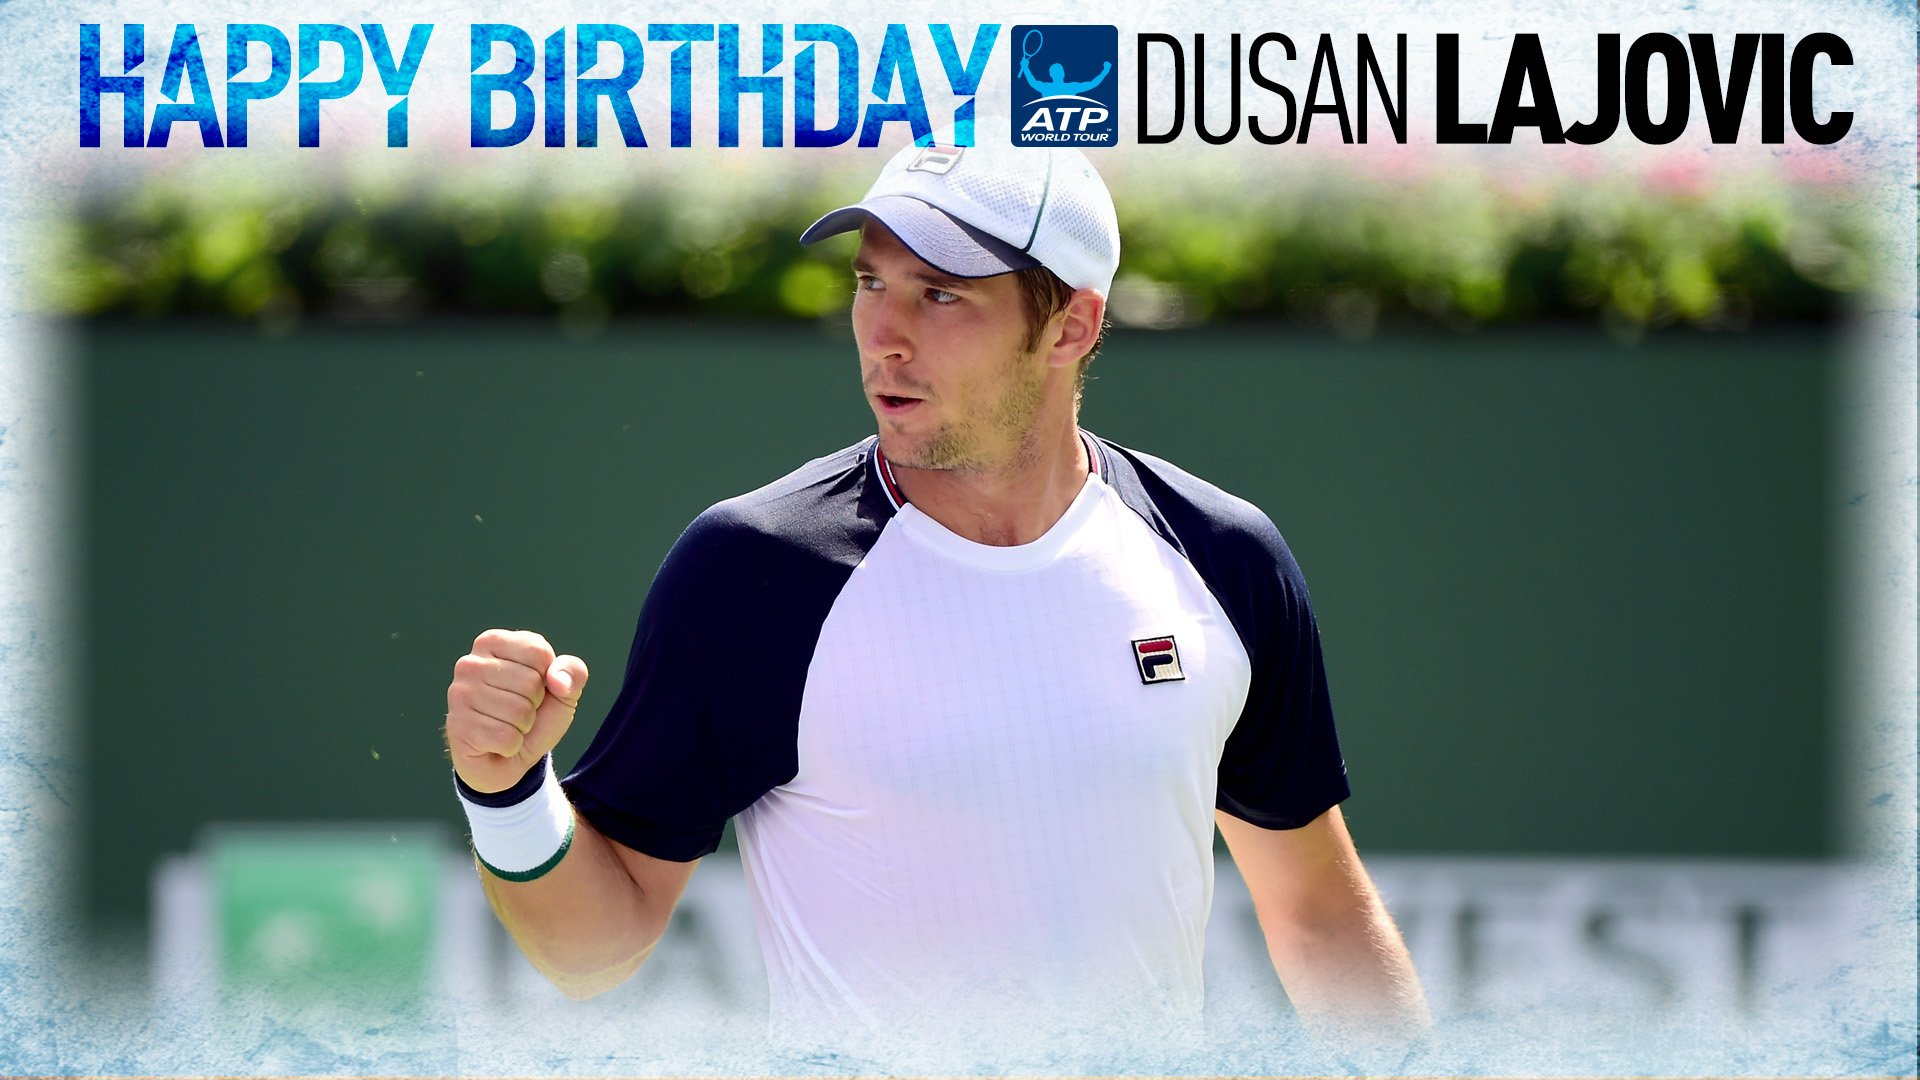 Join us in wishing @Dutzee a happy 27th birthday! Have a great day. �� View #ATP Profile: https://t.co/2befJfXYWt https://t.co/Gmlr9ckYSt